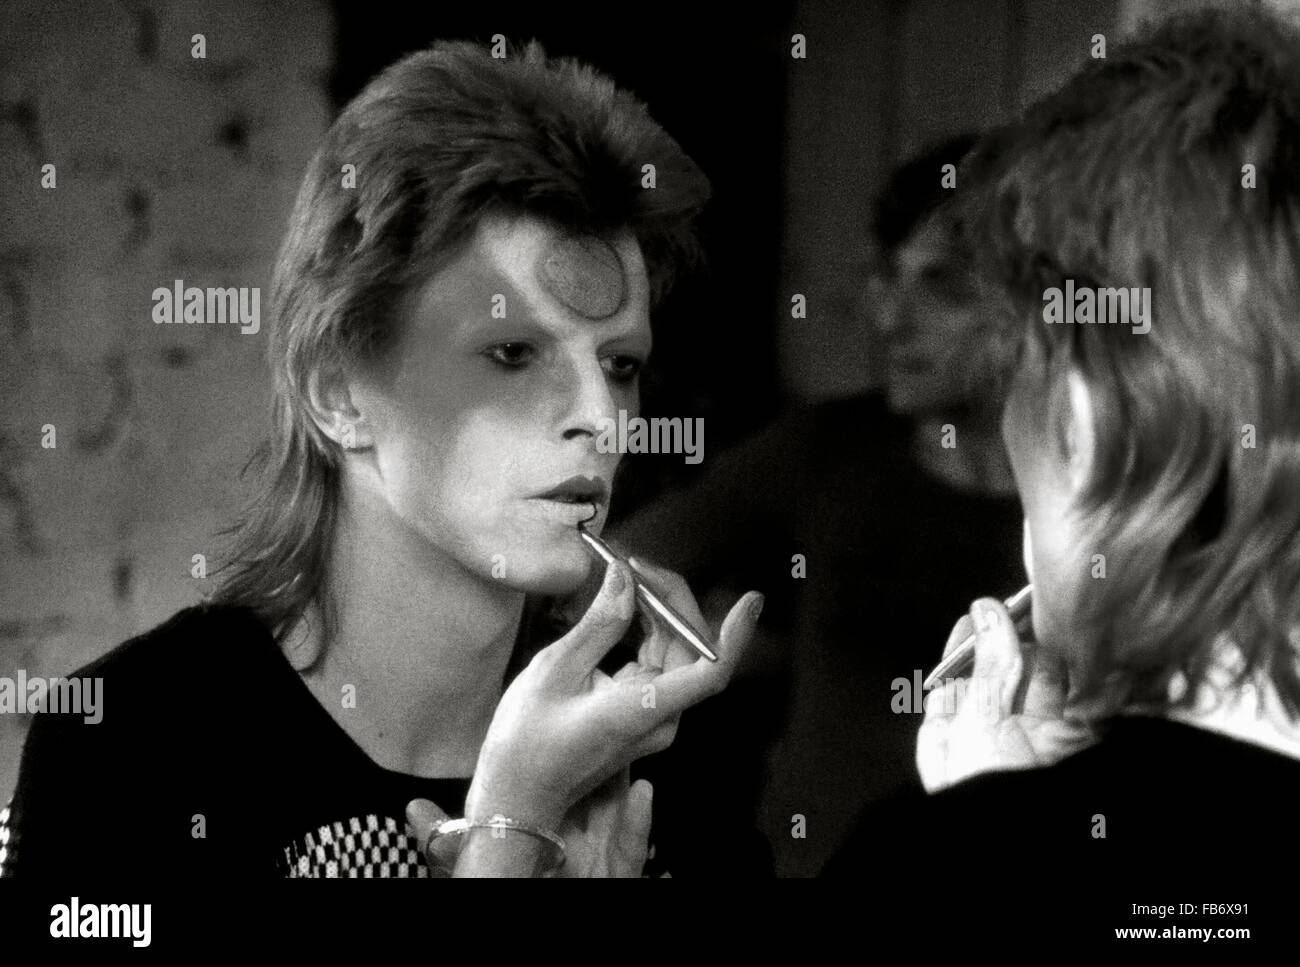 Lewisham, London, England, UK. 22 May 1973. David Bowie applying Ziggy Stardust makeup  in dressing room backstage. - Stock Image